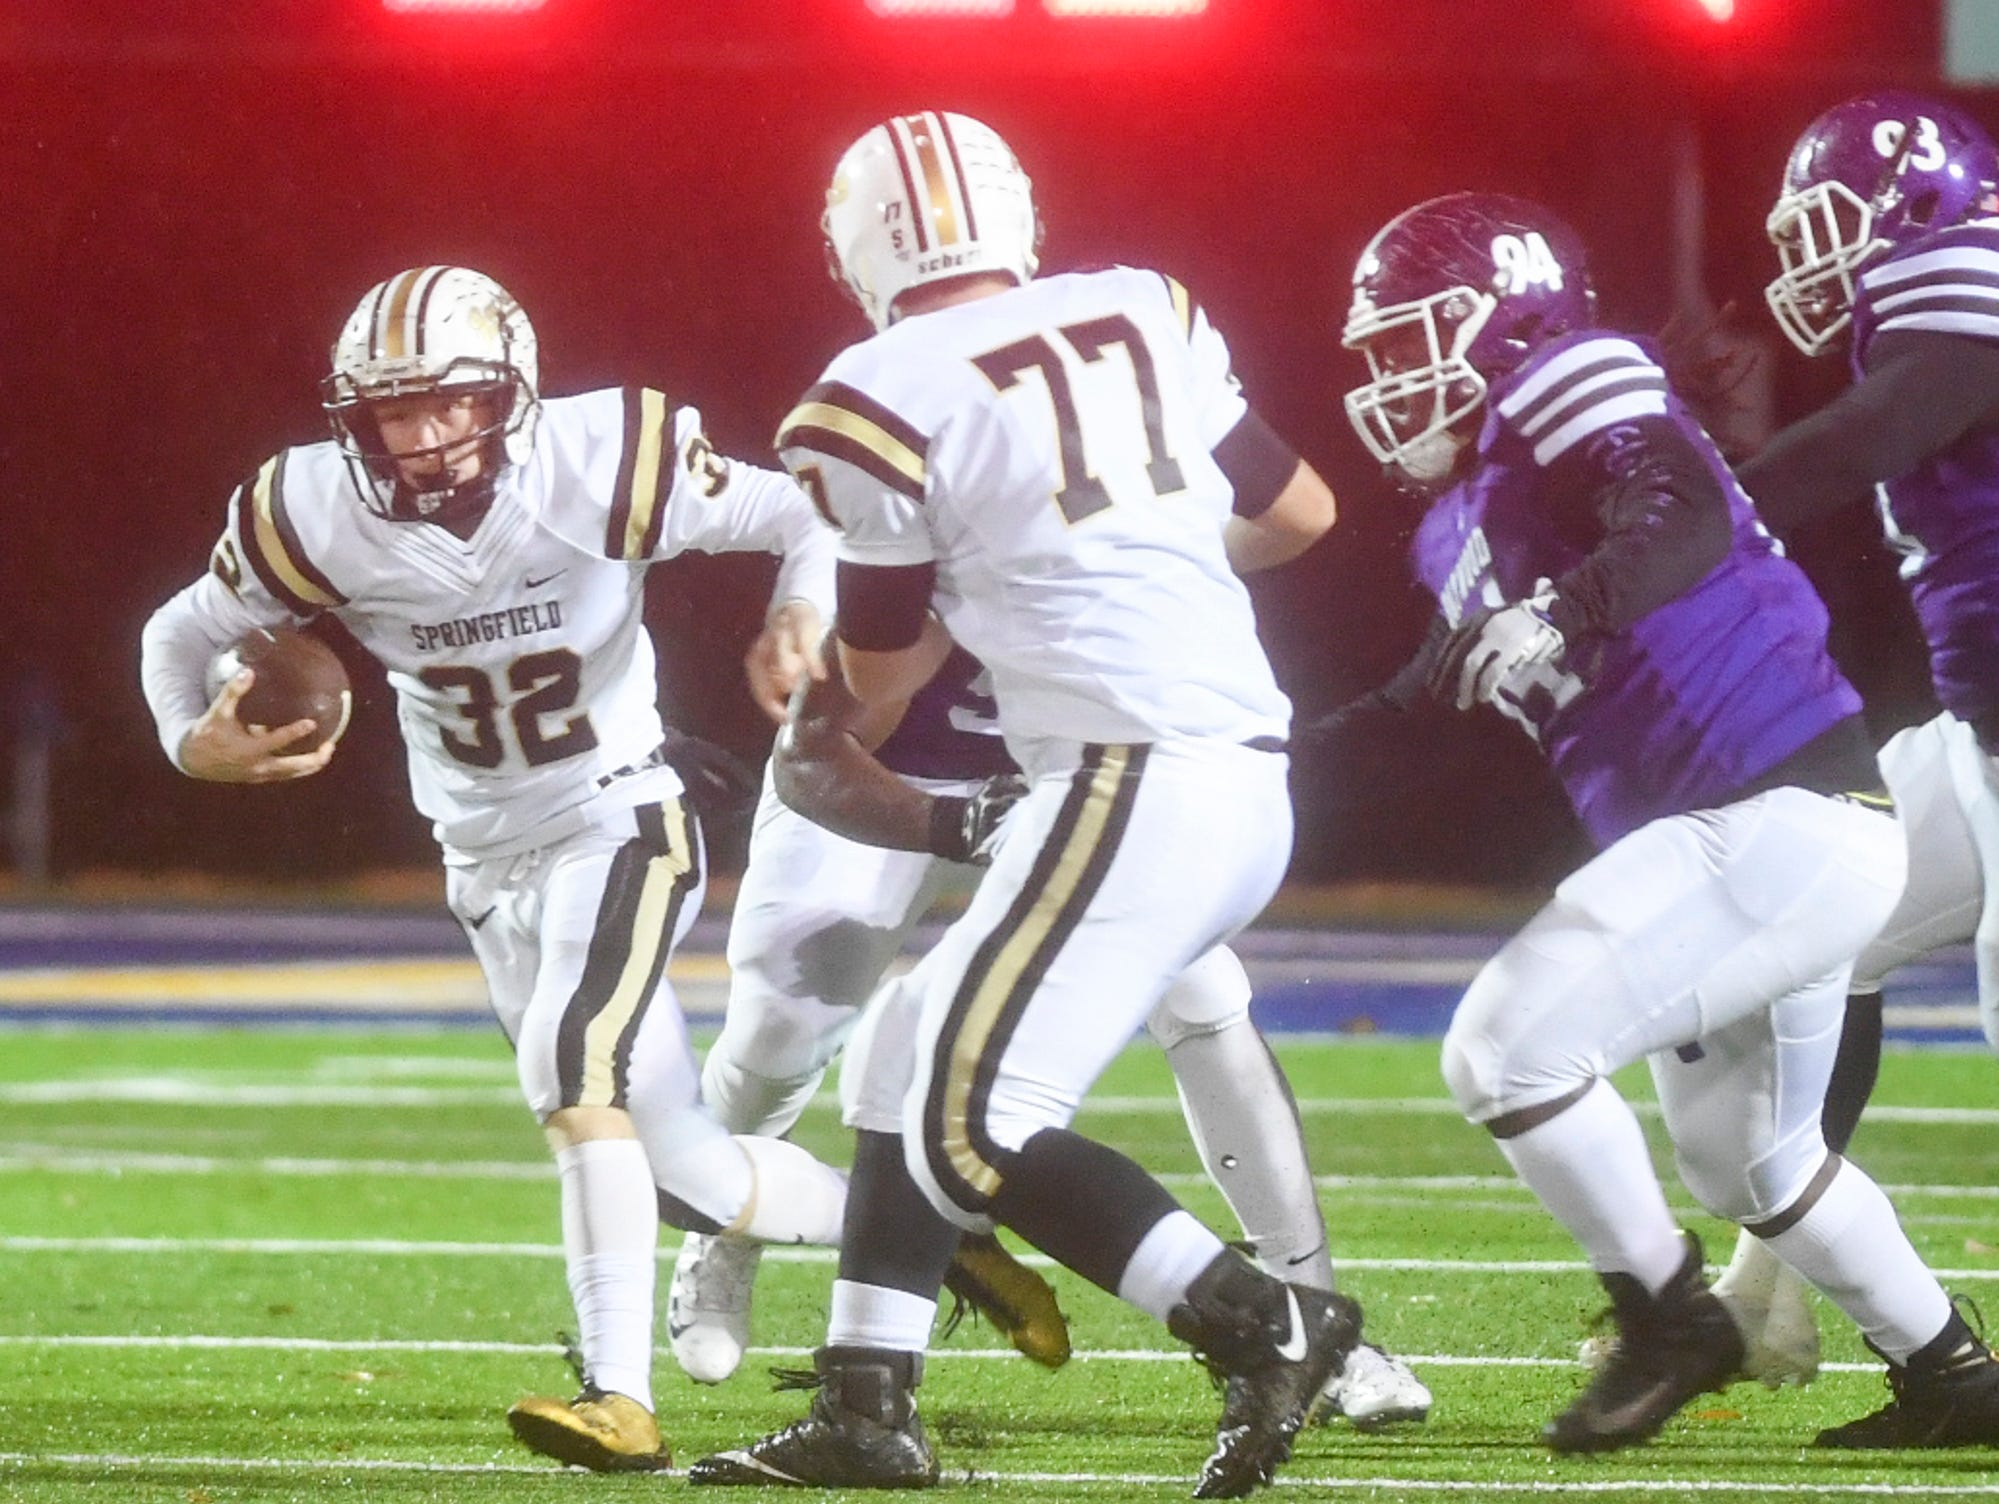 Springfield's Bryan Hayes runs the ball in attempt to avoid Haywood defenders during their Class 4A semifinal game, Friday, November 23. Haywood defeated Springfield, 49-14.